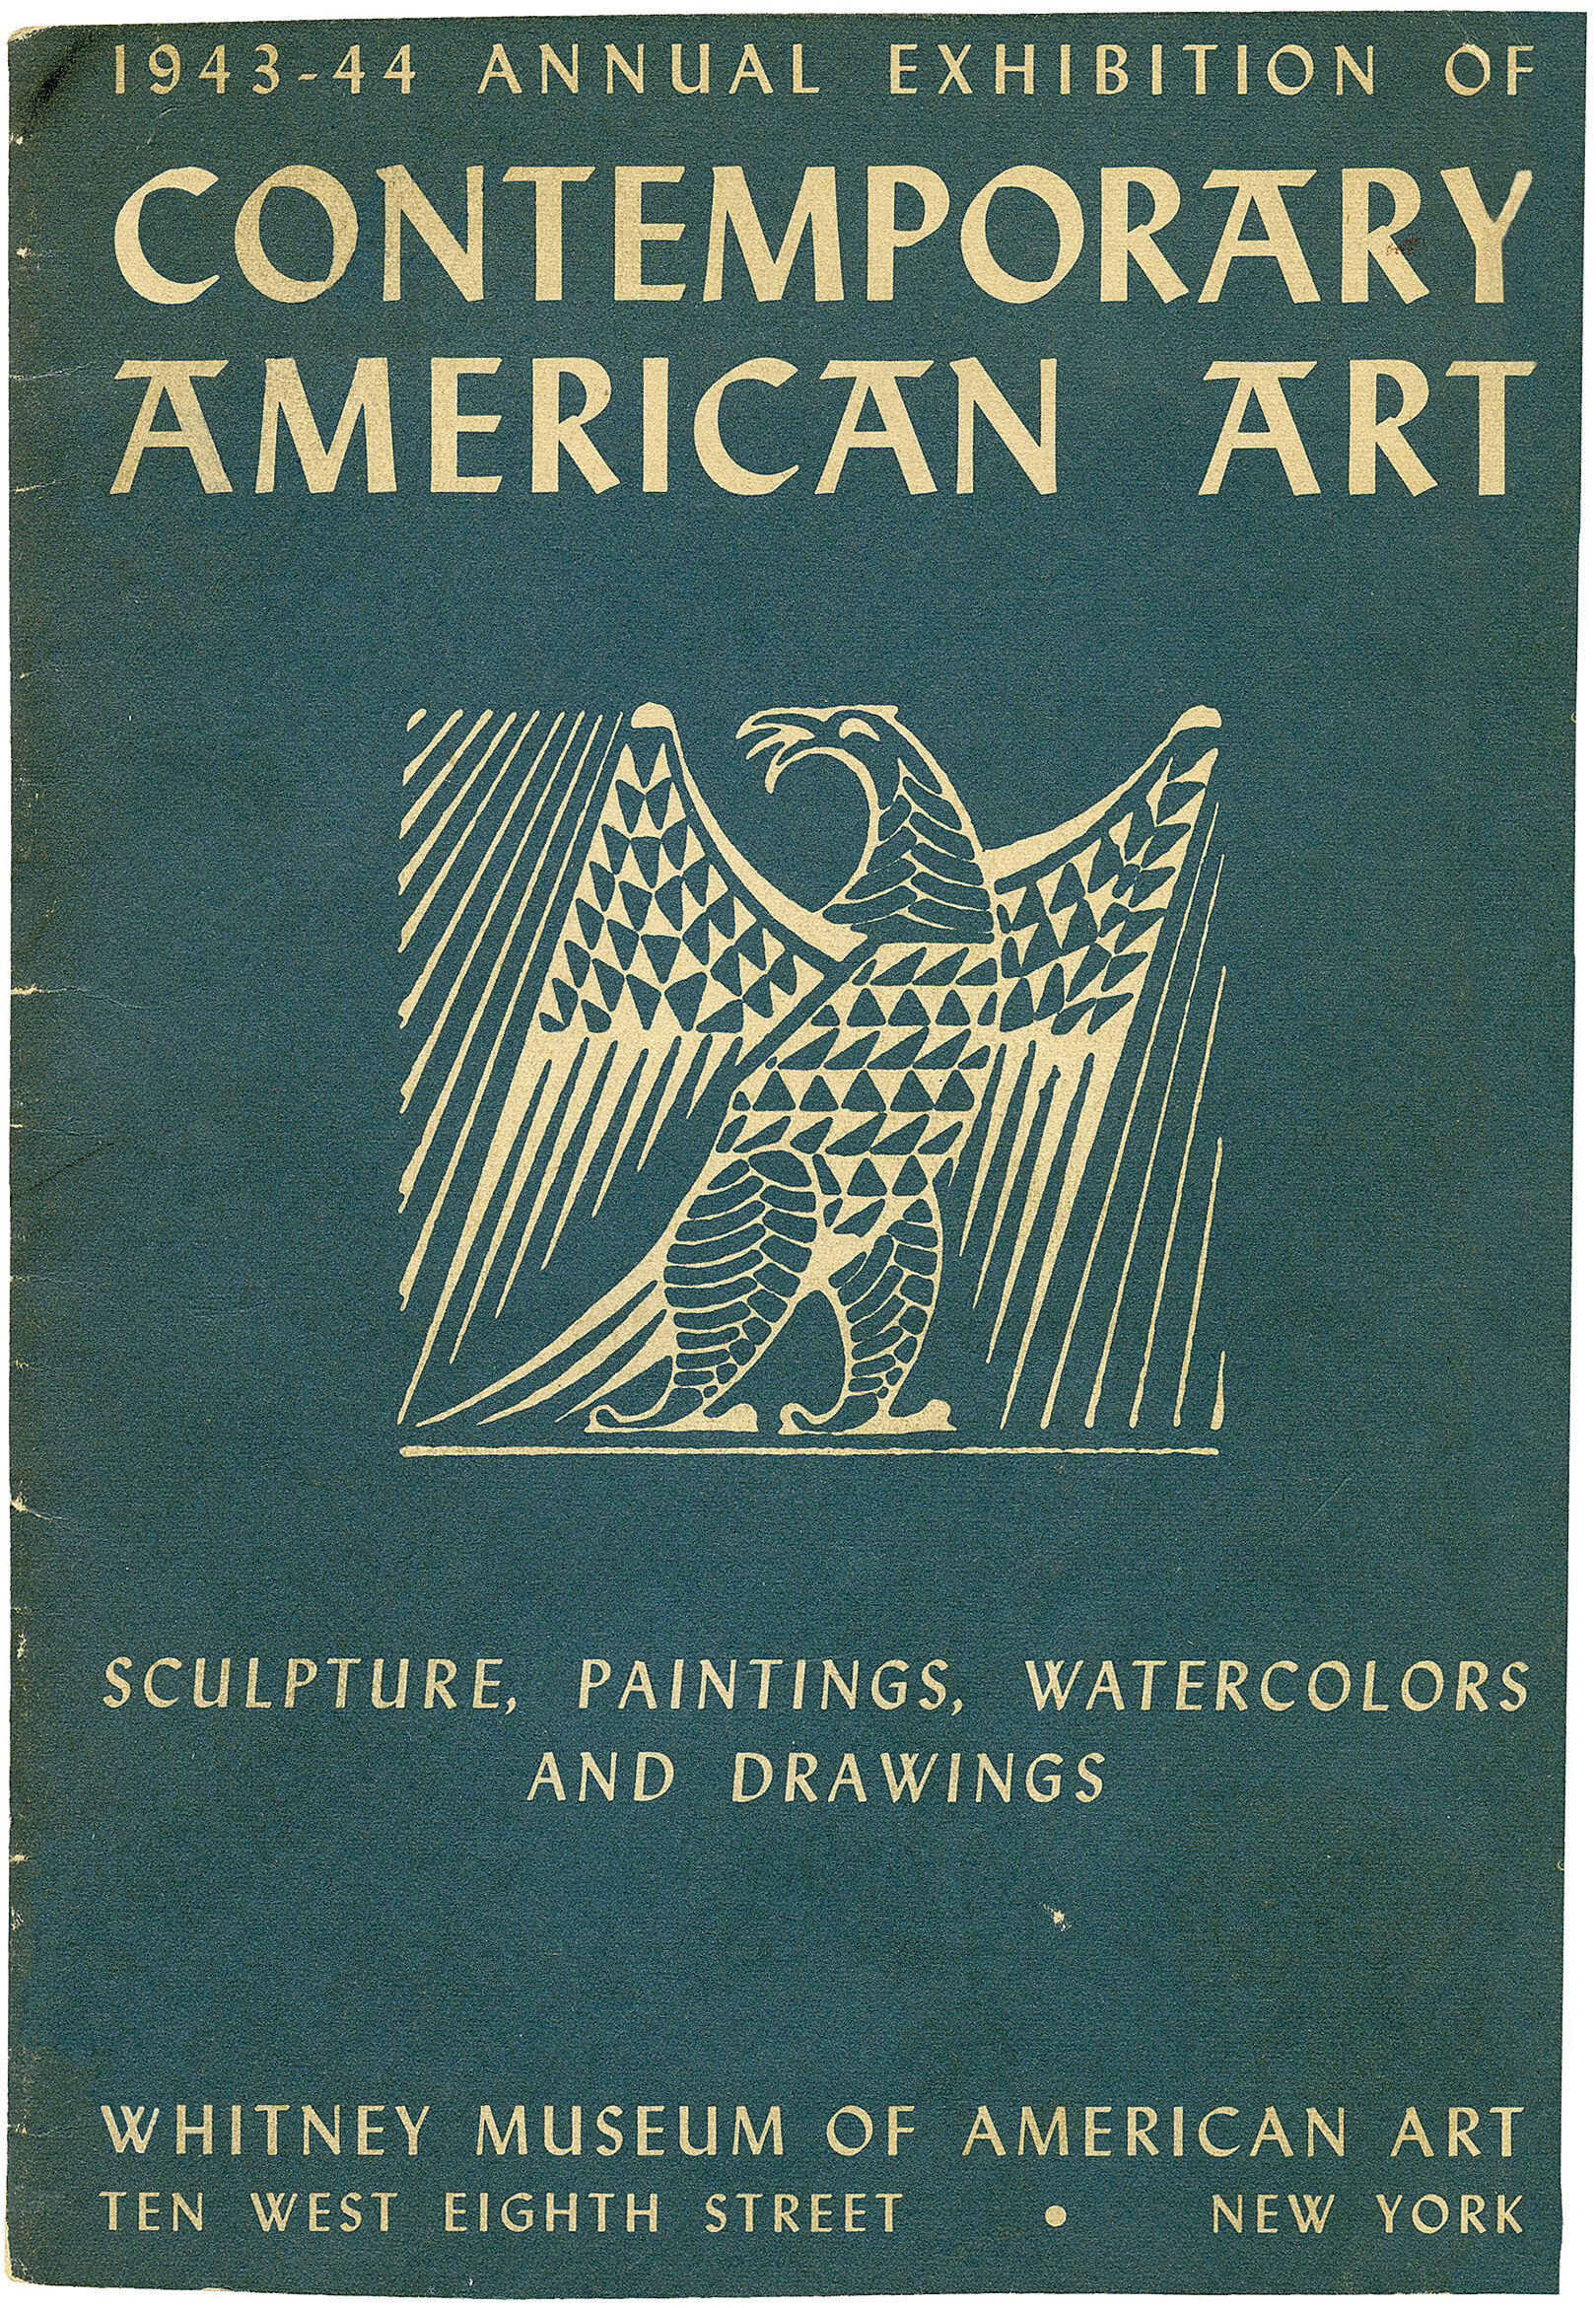 Cover for 1943 Annual Exhibition of Contemporary American Art catalogue